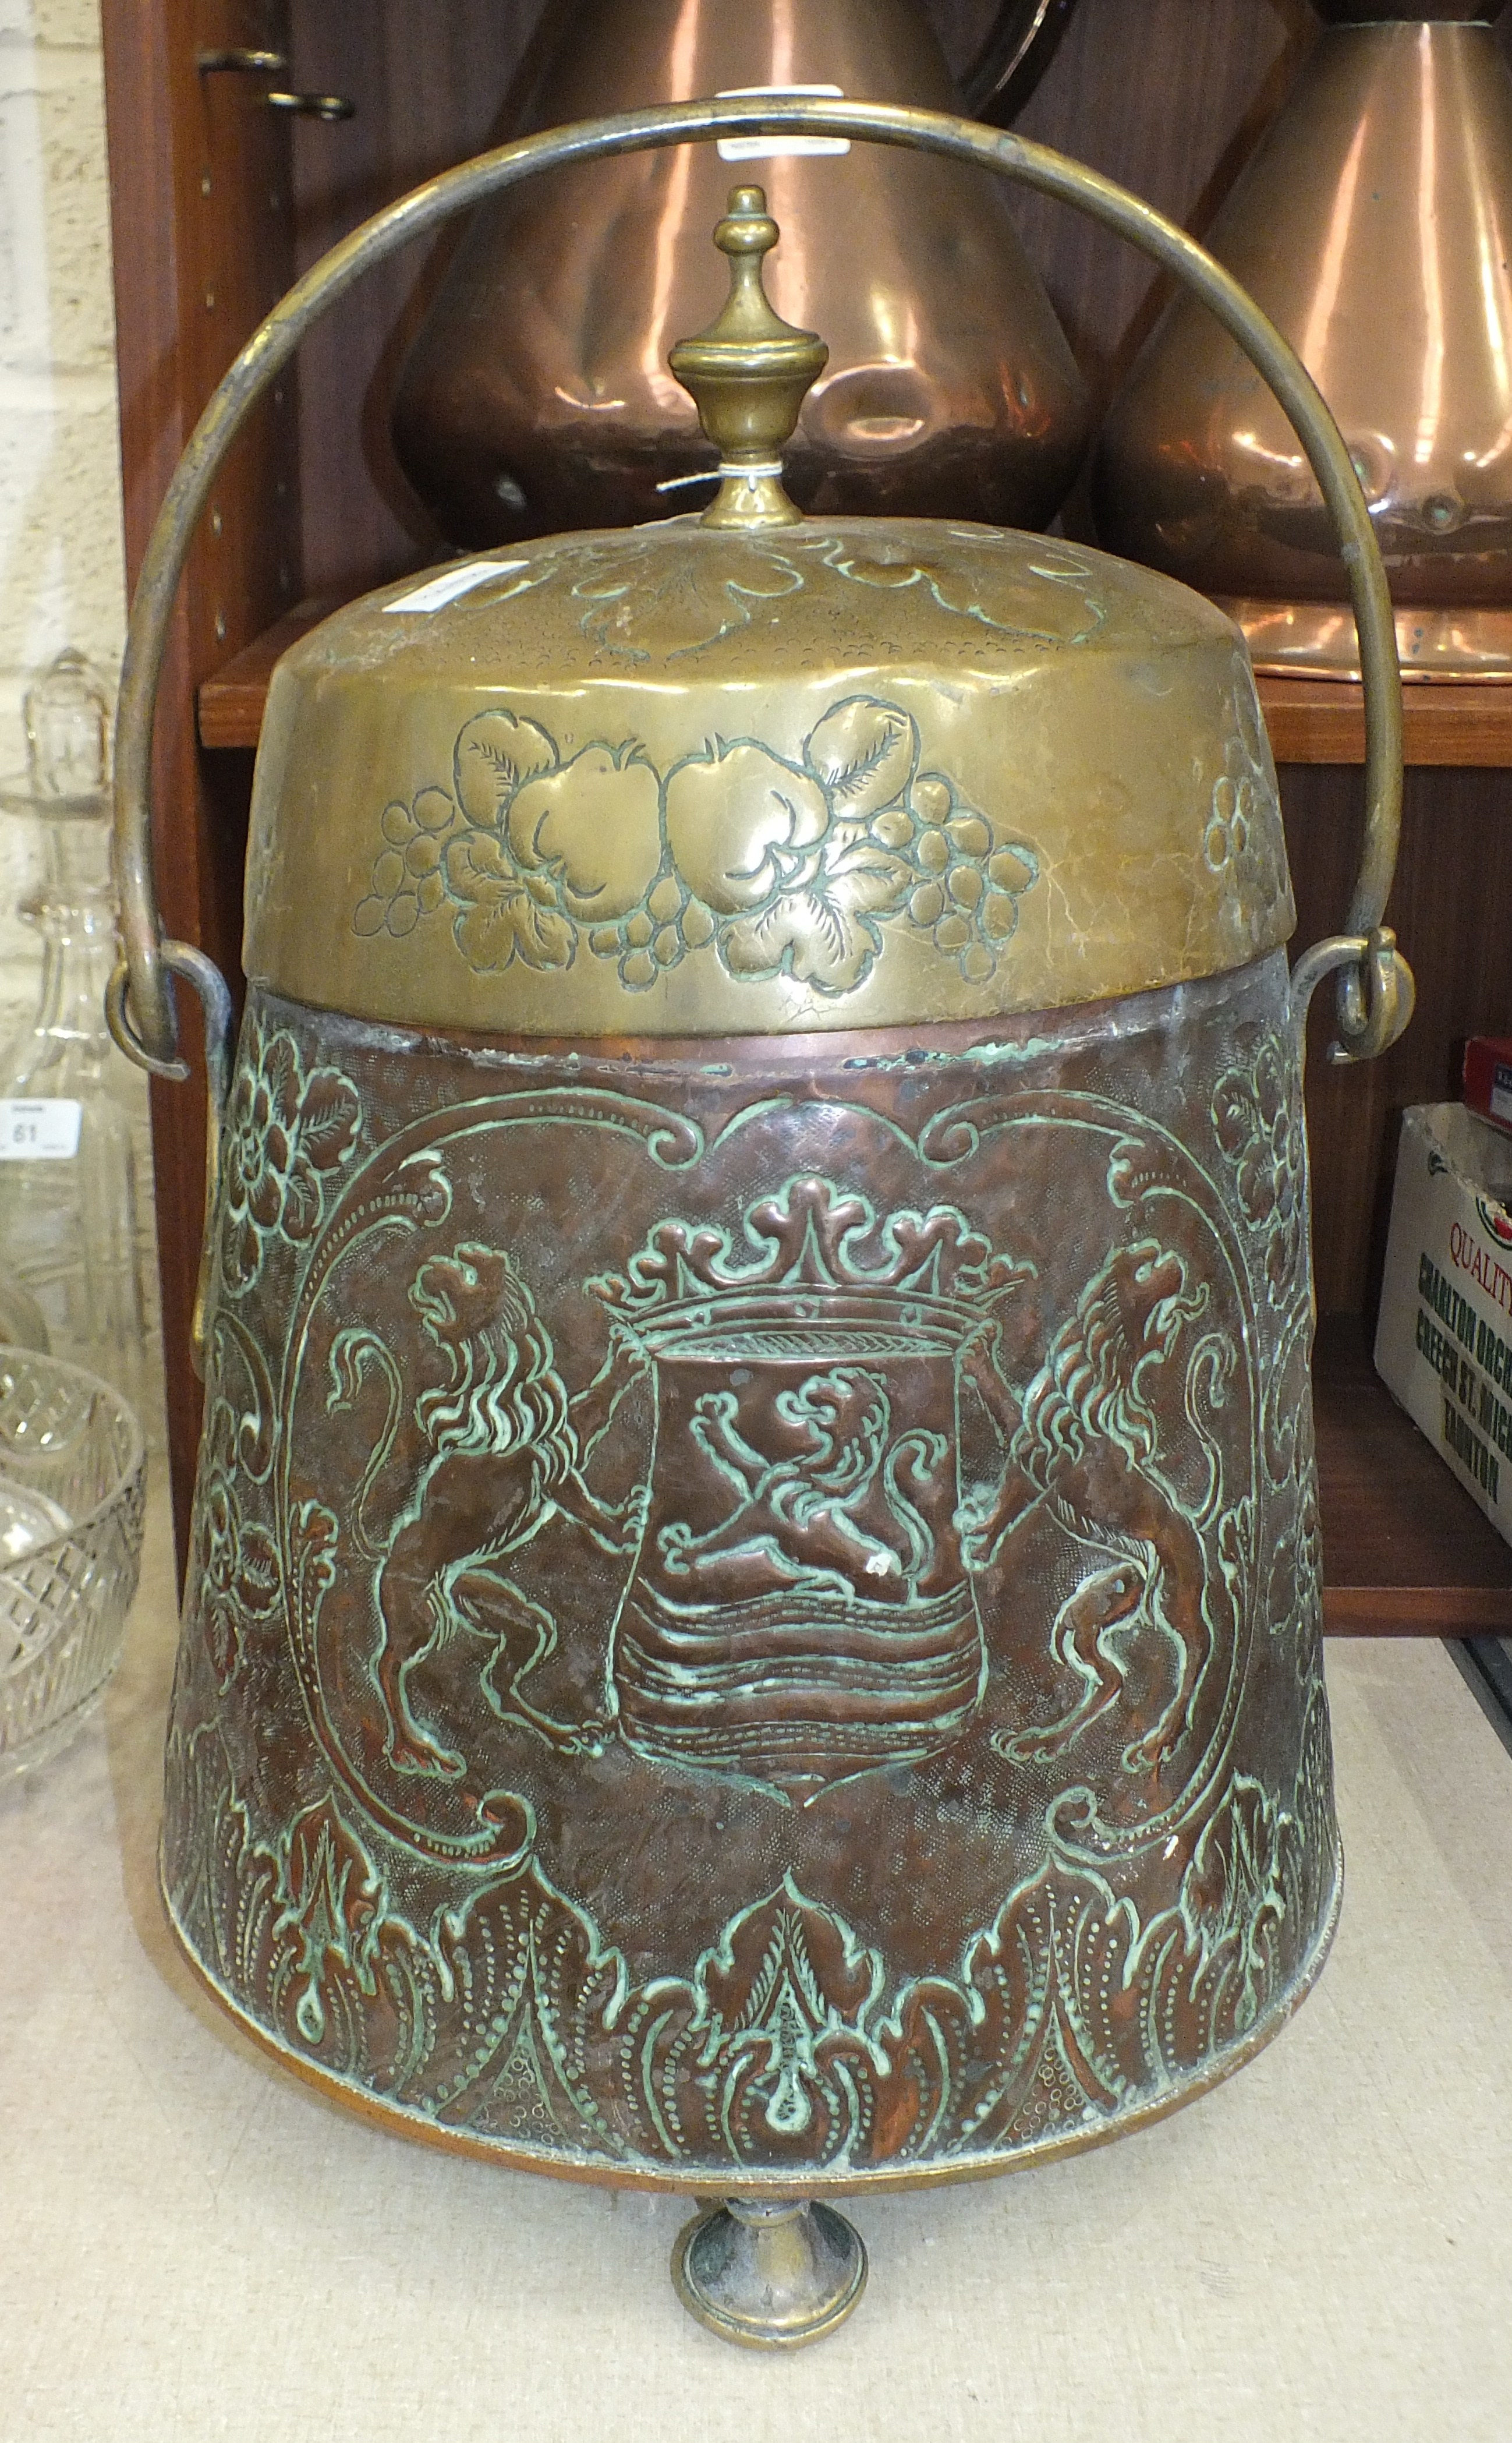 Lot 62 - A copper coal box of circular tapering form, embossed with the Dutch coat of arms and a rural